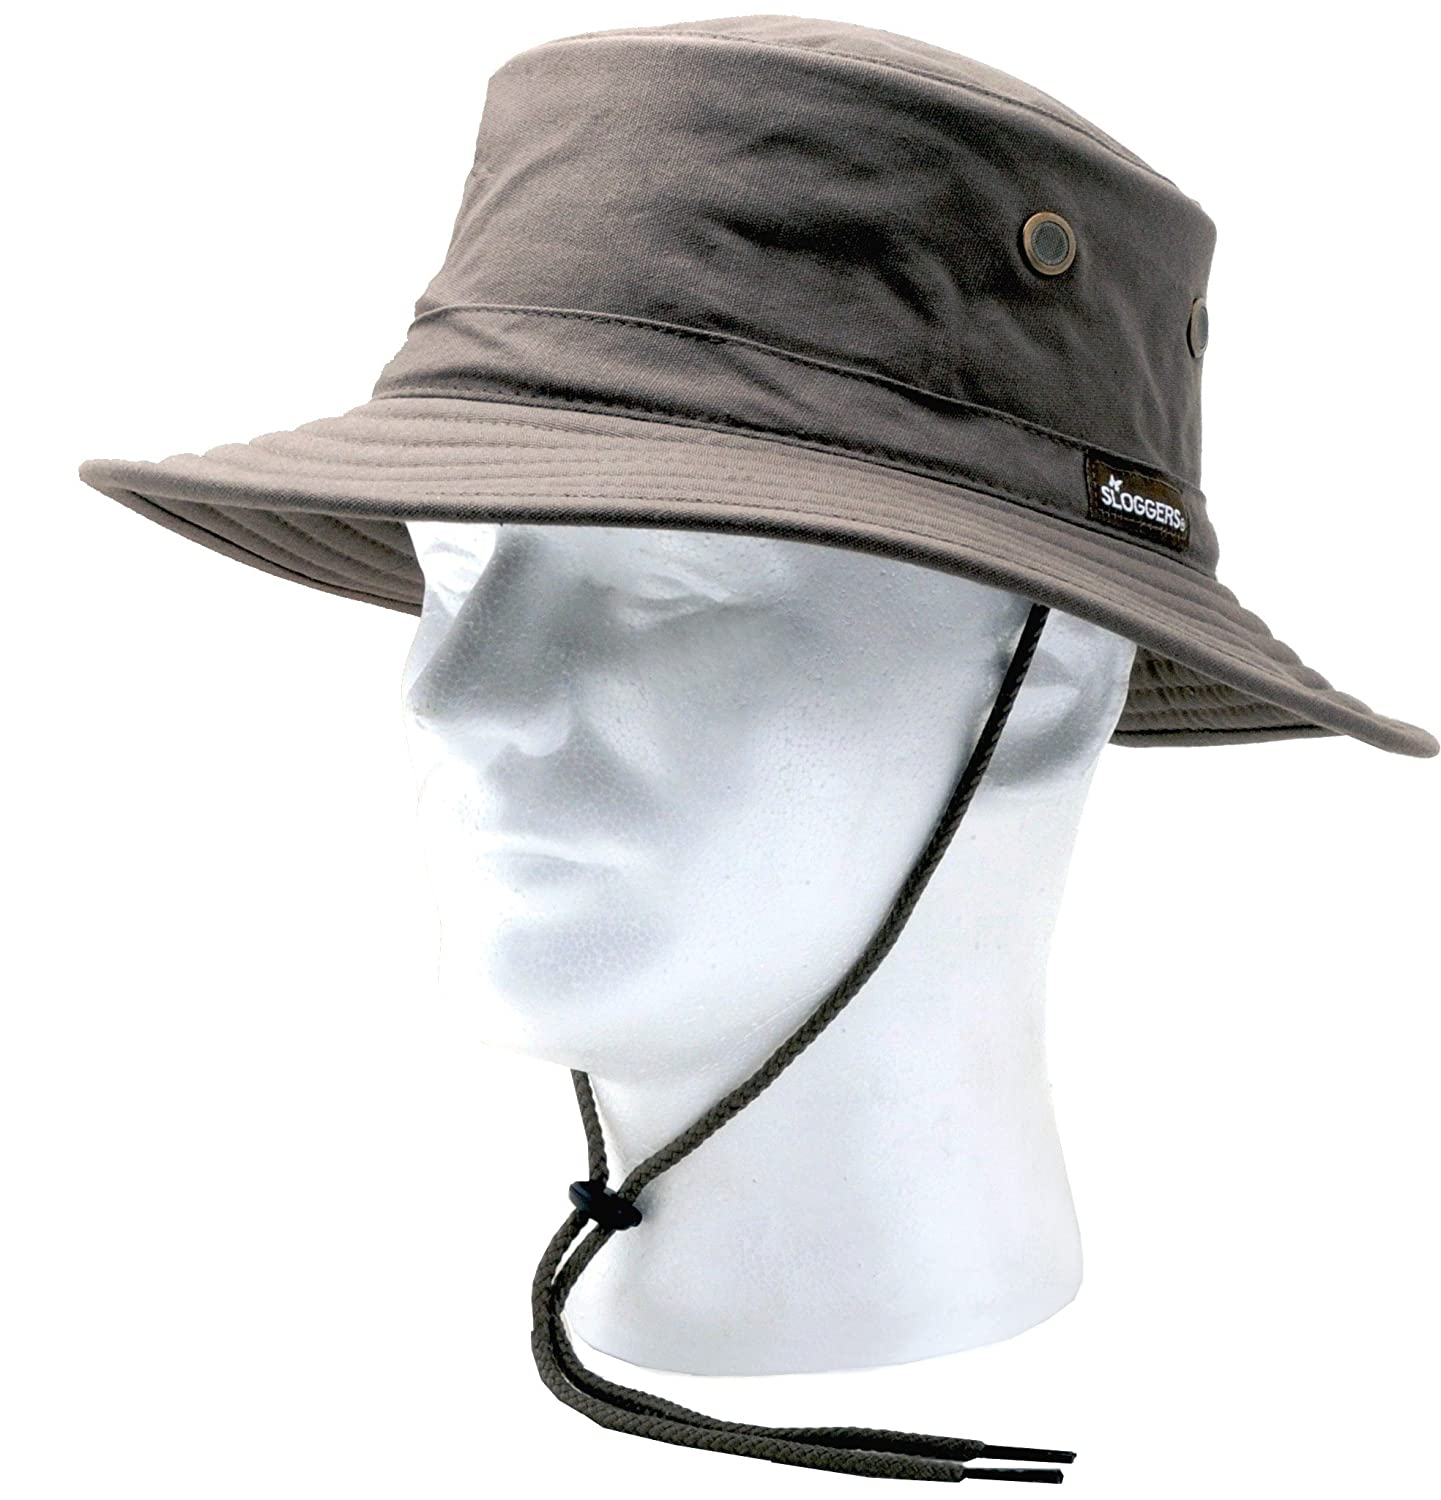 Best Hat For Sun Protection